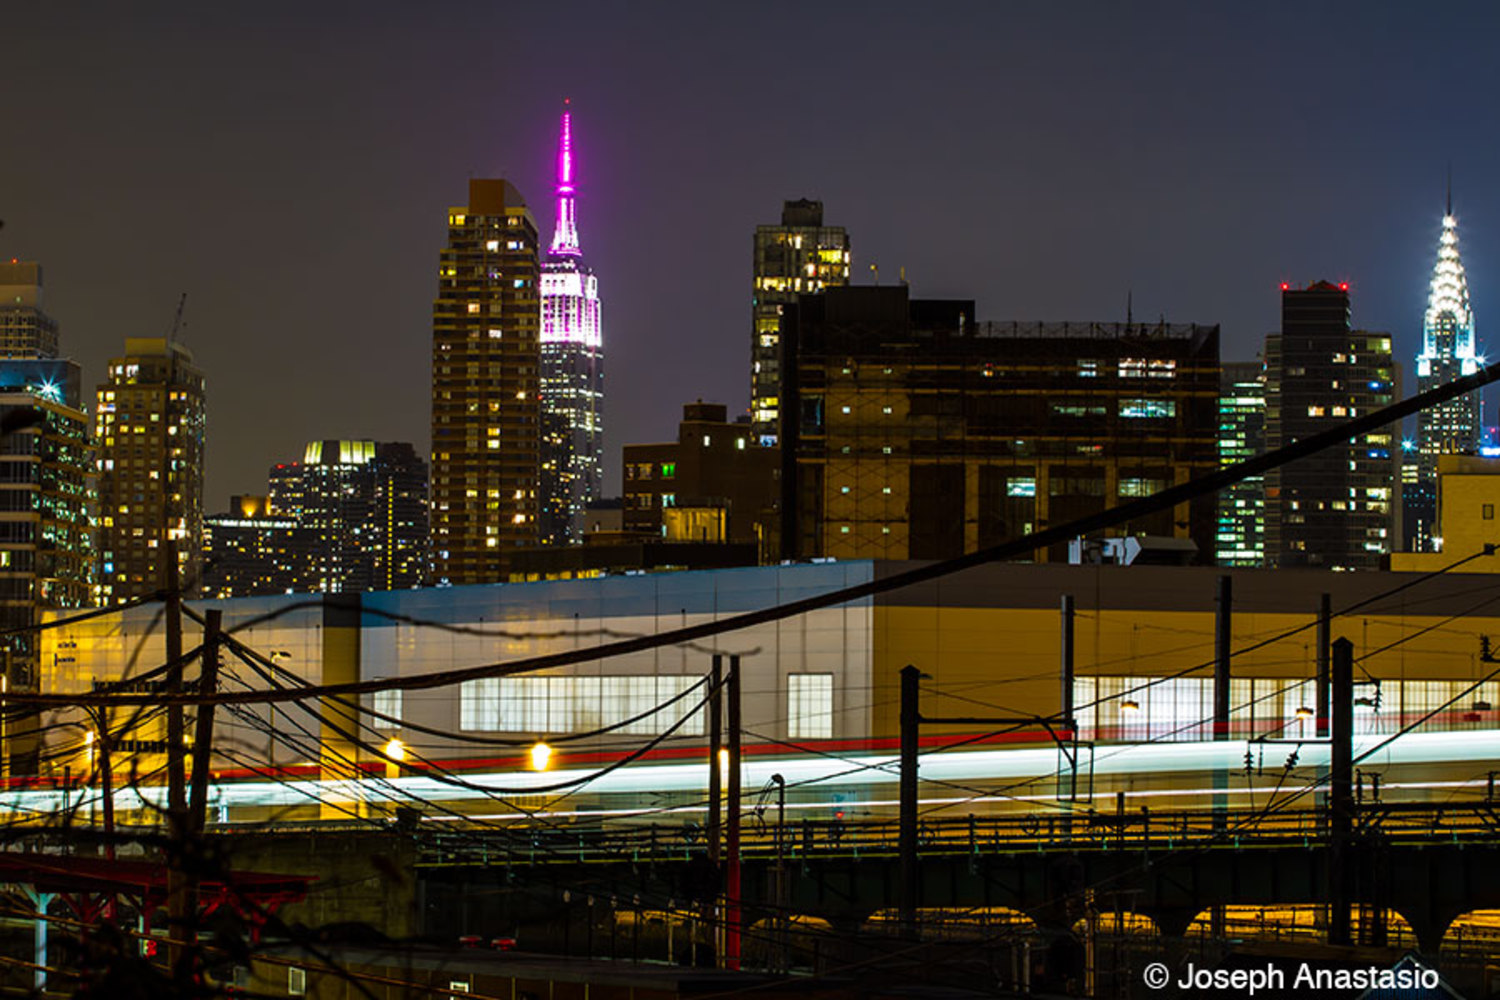 Views of the city skyline from the Skillman avenue end of the cutoff